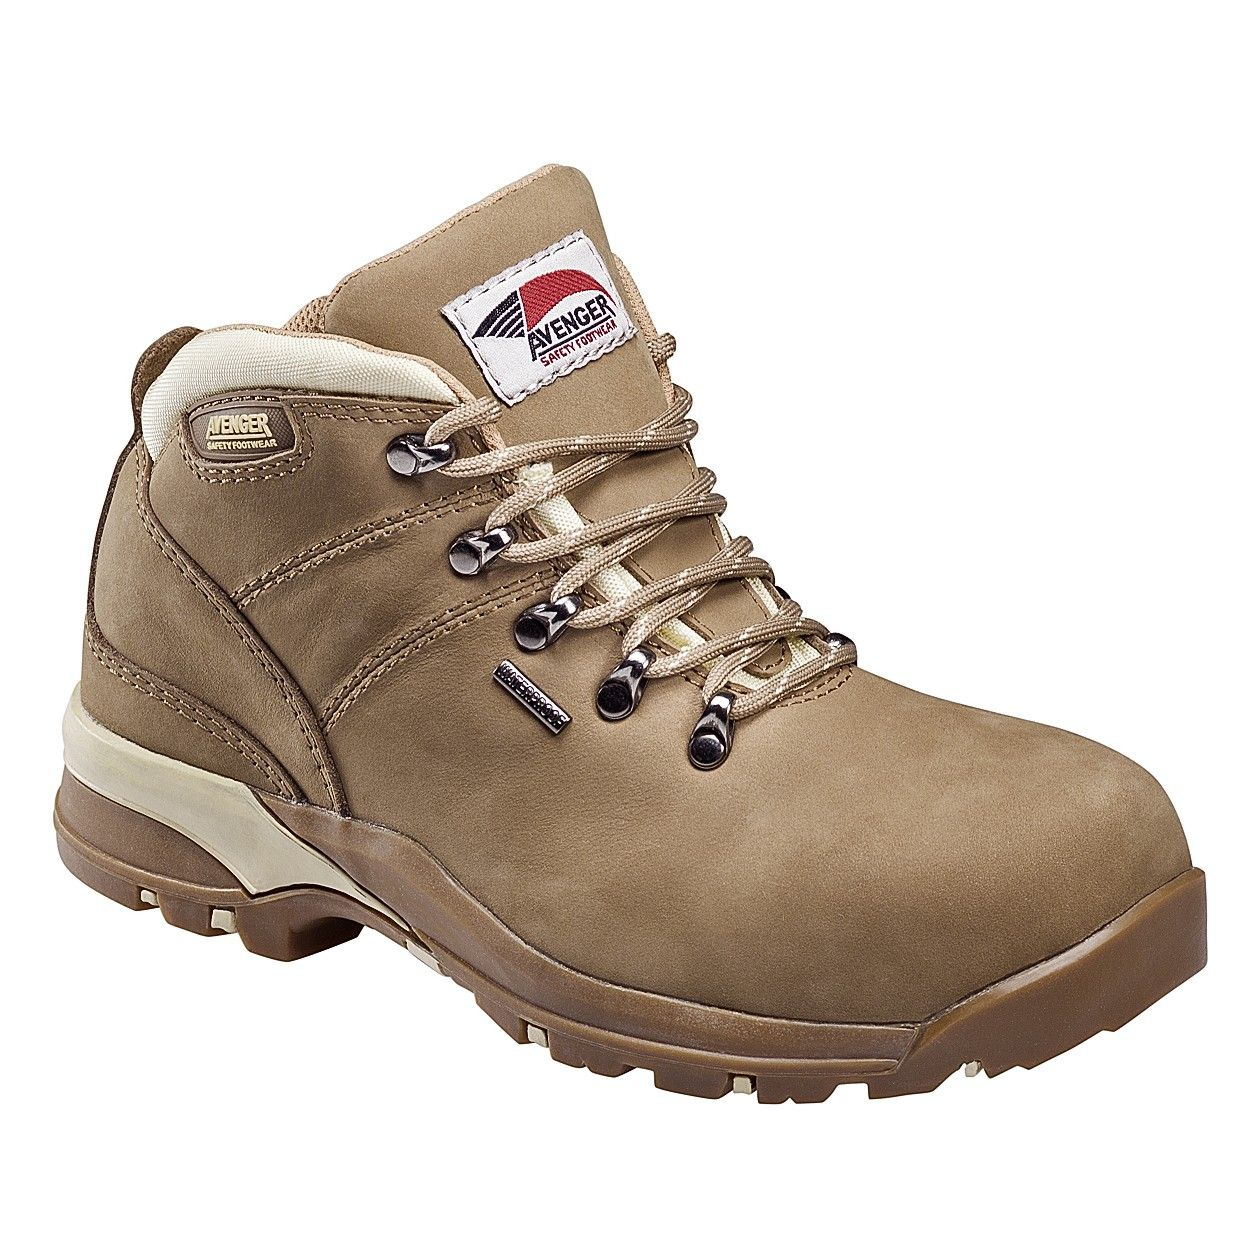 Pin on Women's Safety Boots \u0026 Shoes